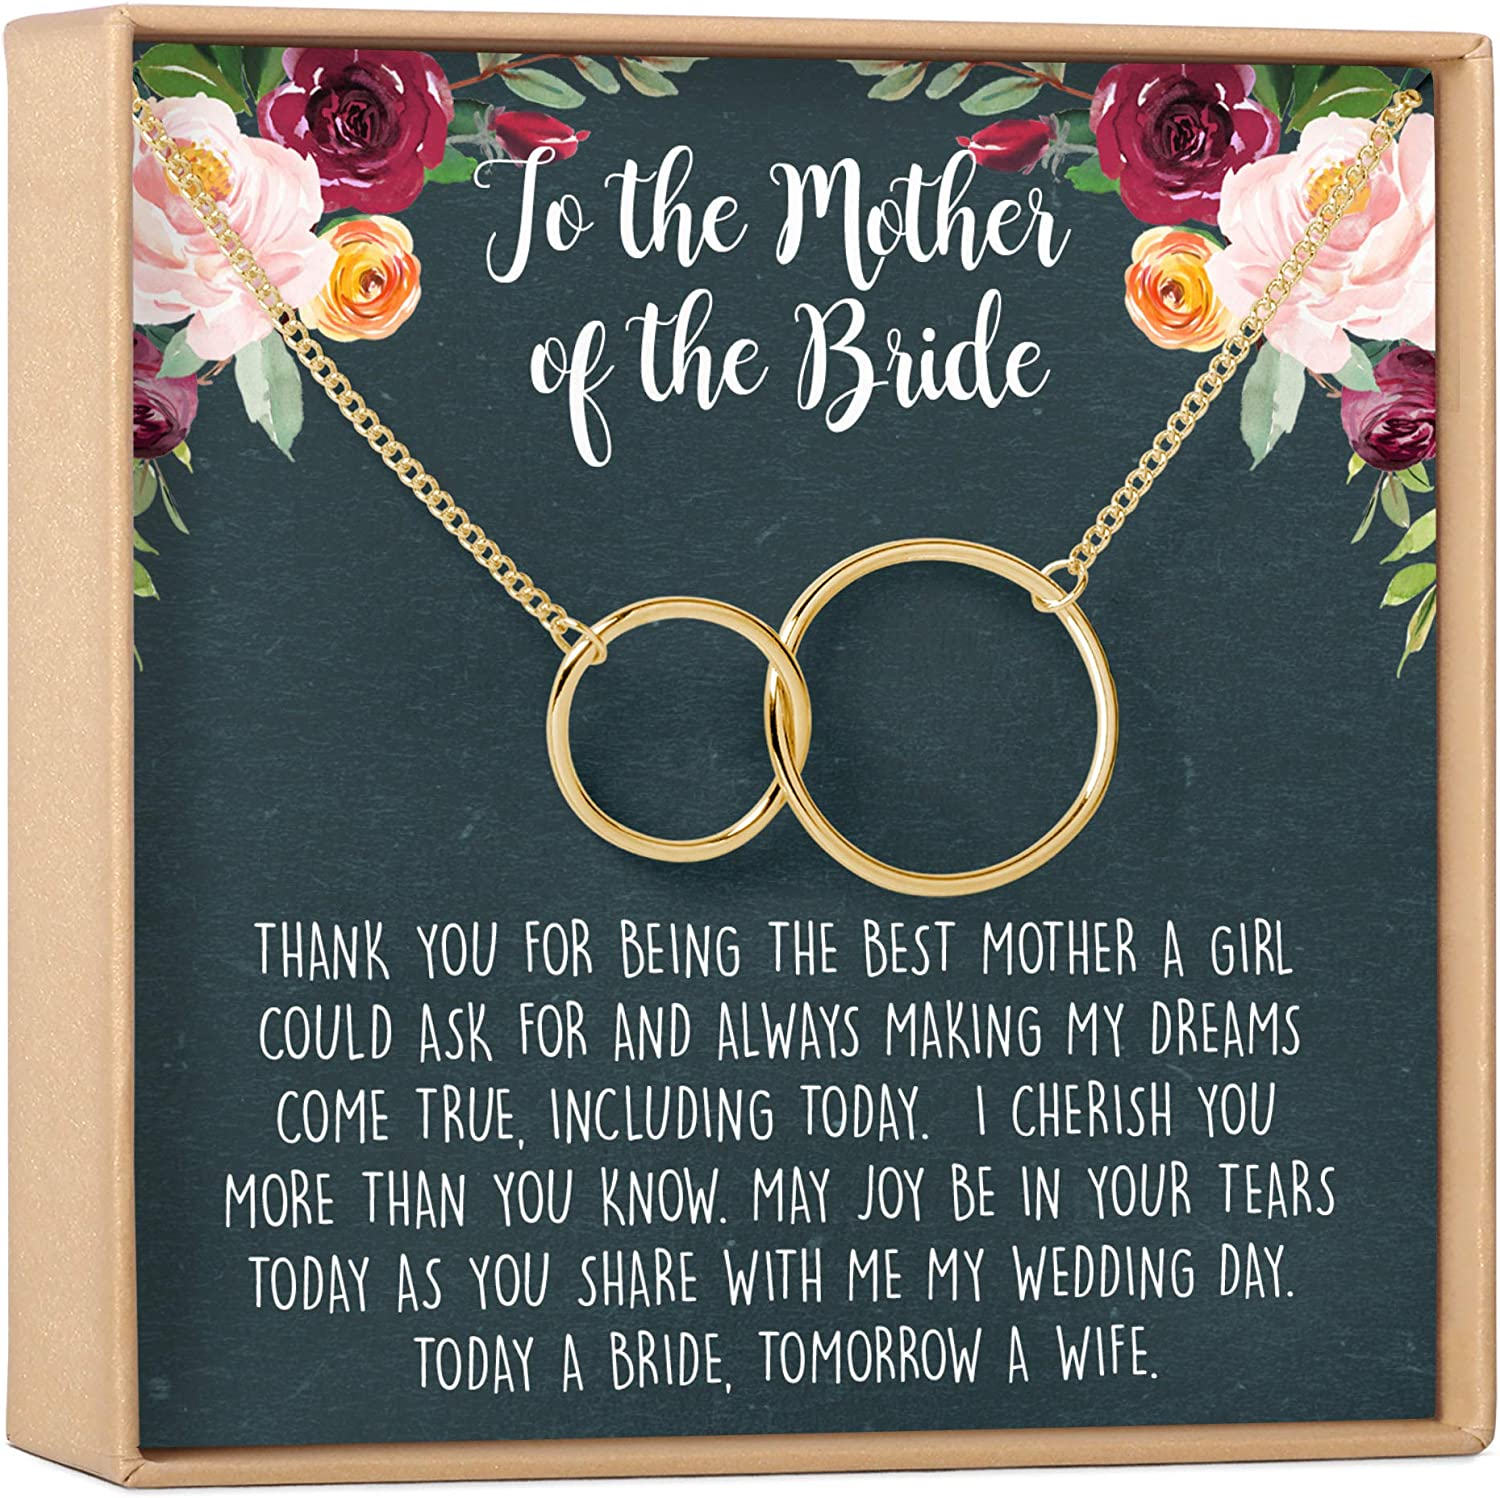 Dear Ava Mother of Challenge the lowest price of Japan ☆ The Jewe Gift Bride 40% OFF Cheap Sale Necklace: Parent